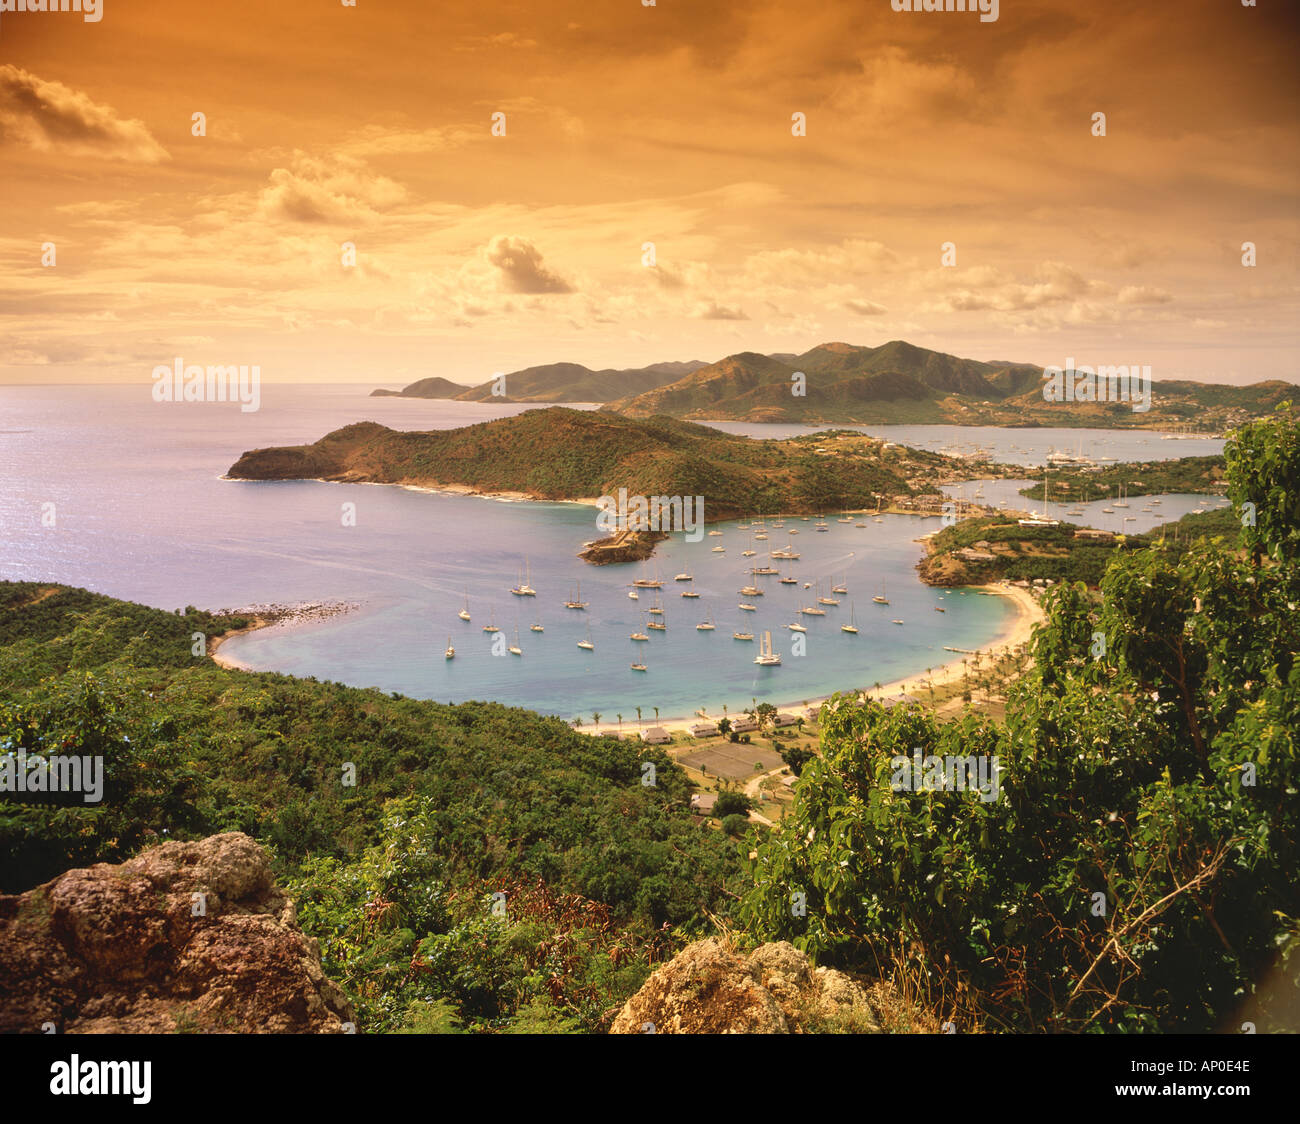 Dramatic bird s eye sunset view of Nelson s Dockyard surrounding mountains and coves on the tropical island of Antigua Stock Photo